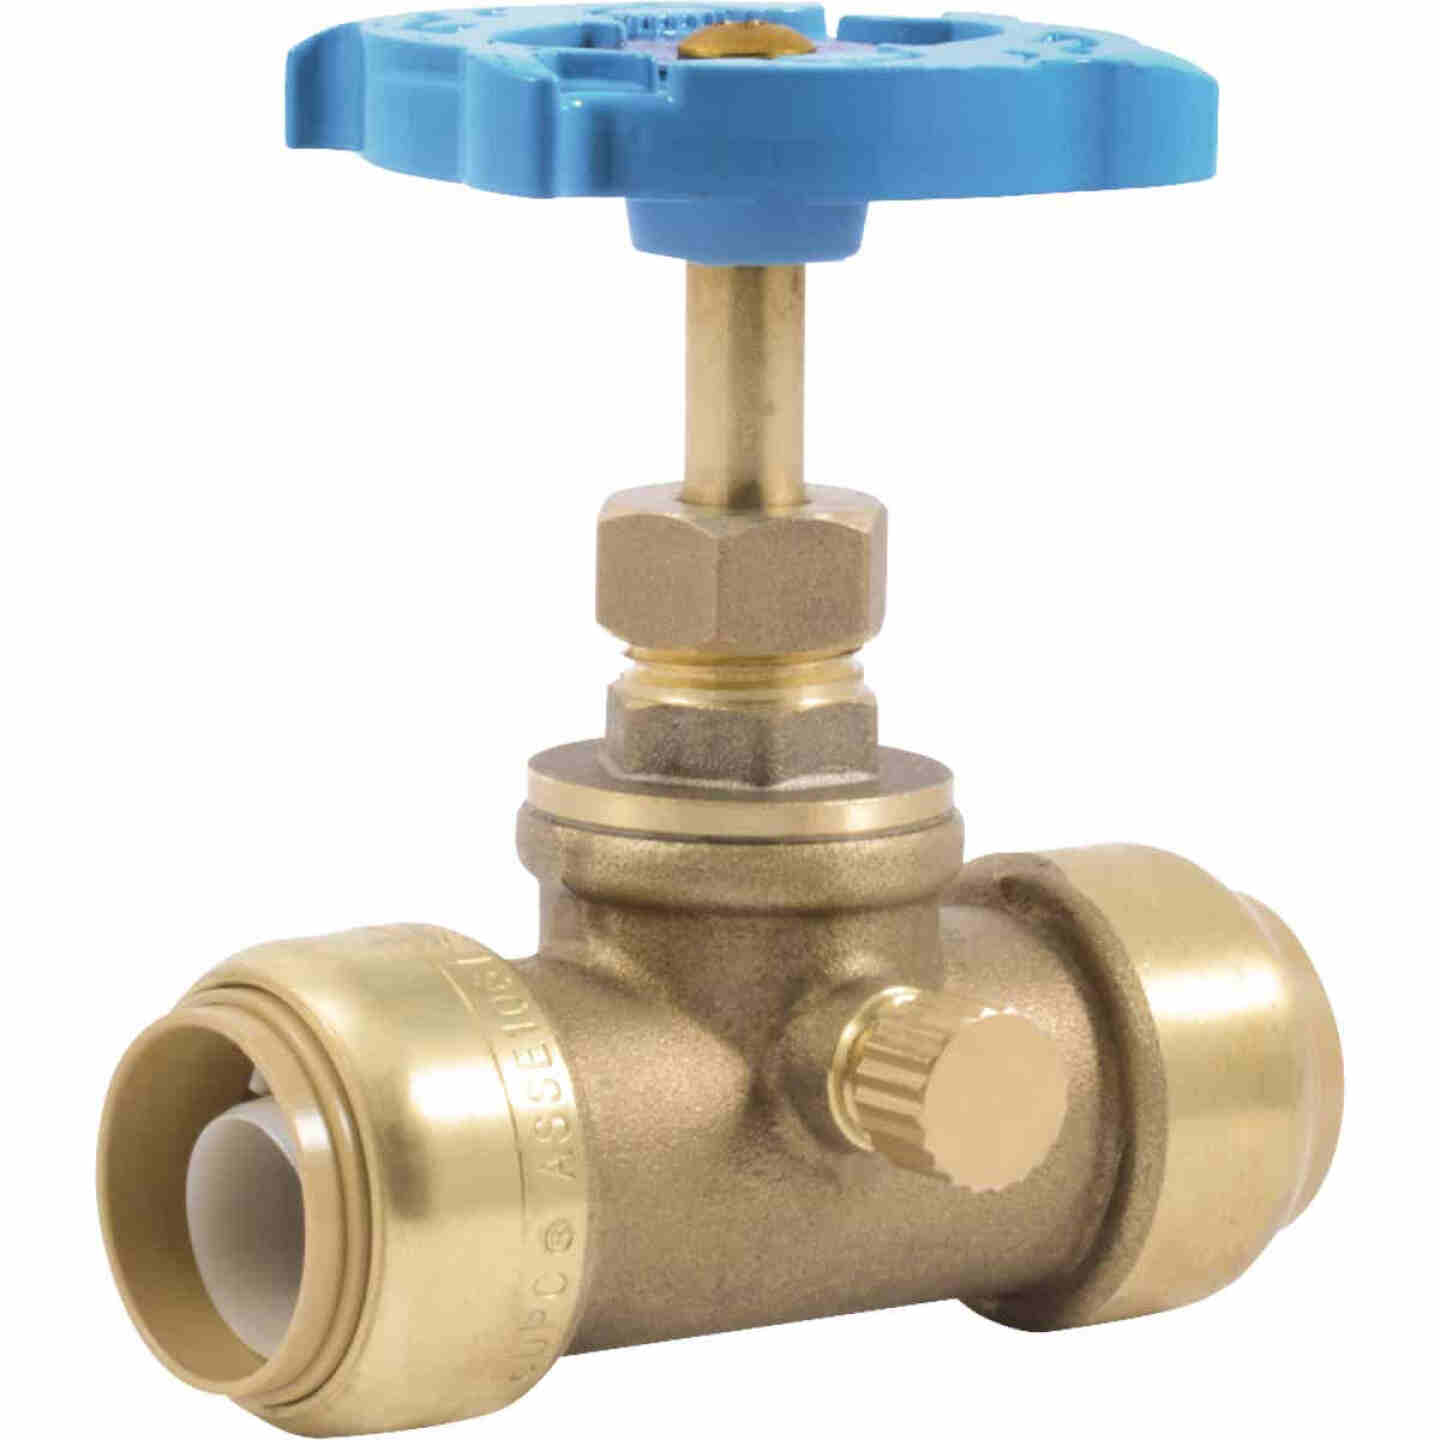 Sharkbite 3/4 In. SB x 3/4 In. SB Brass Push-to-Connect Gate Valve Image 1